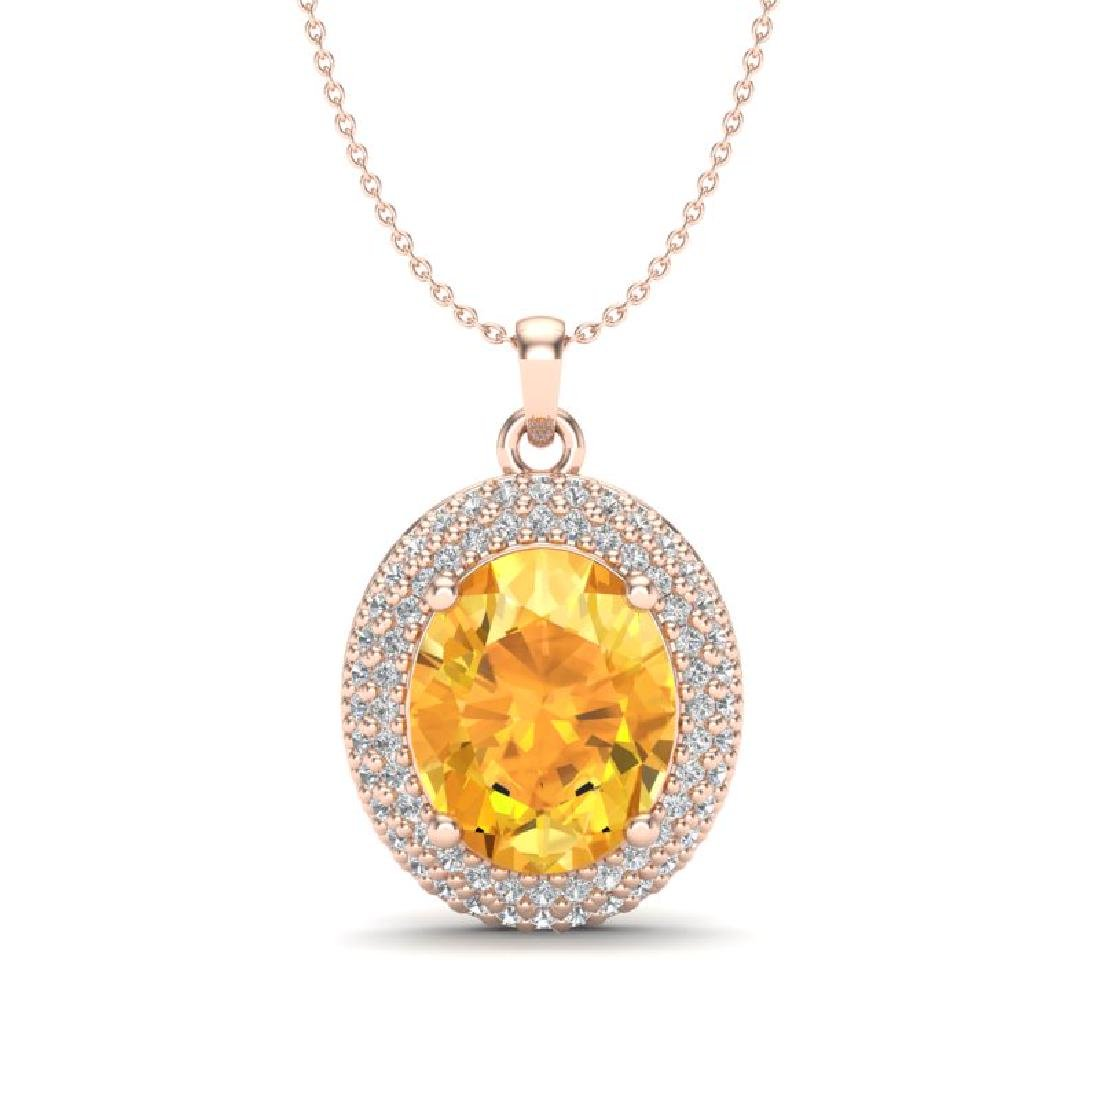 4 CTW Citrine & Micro Pave VS/SI Diamond Necklace 14K